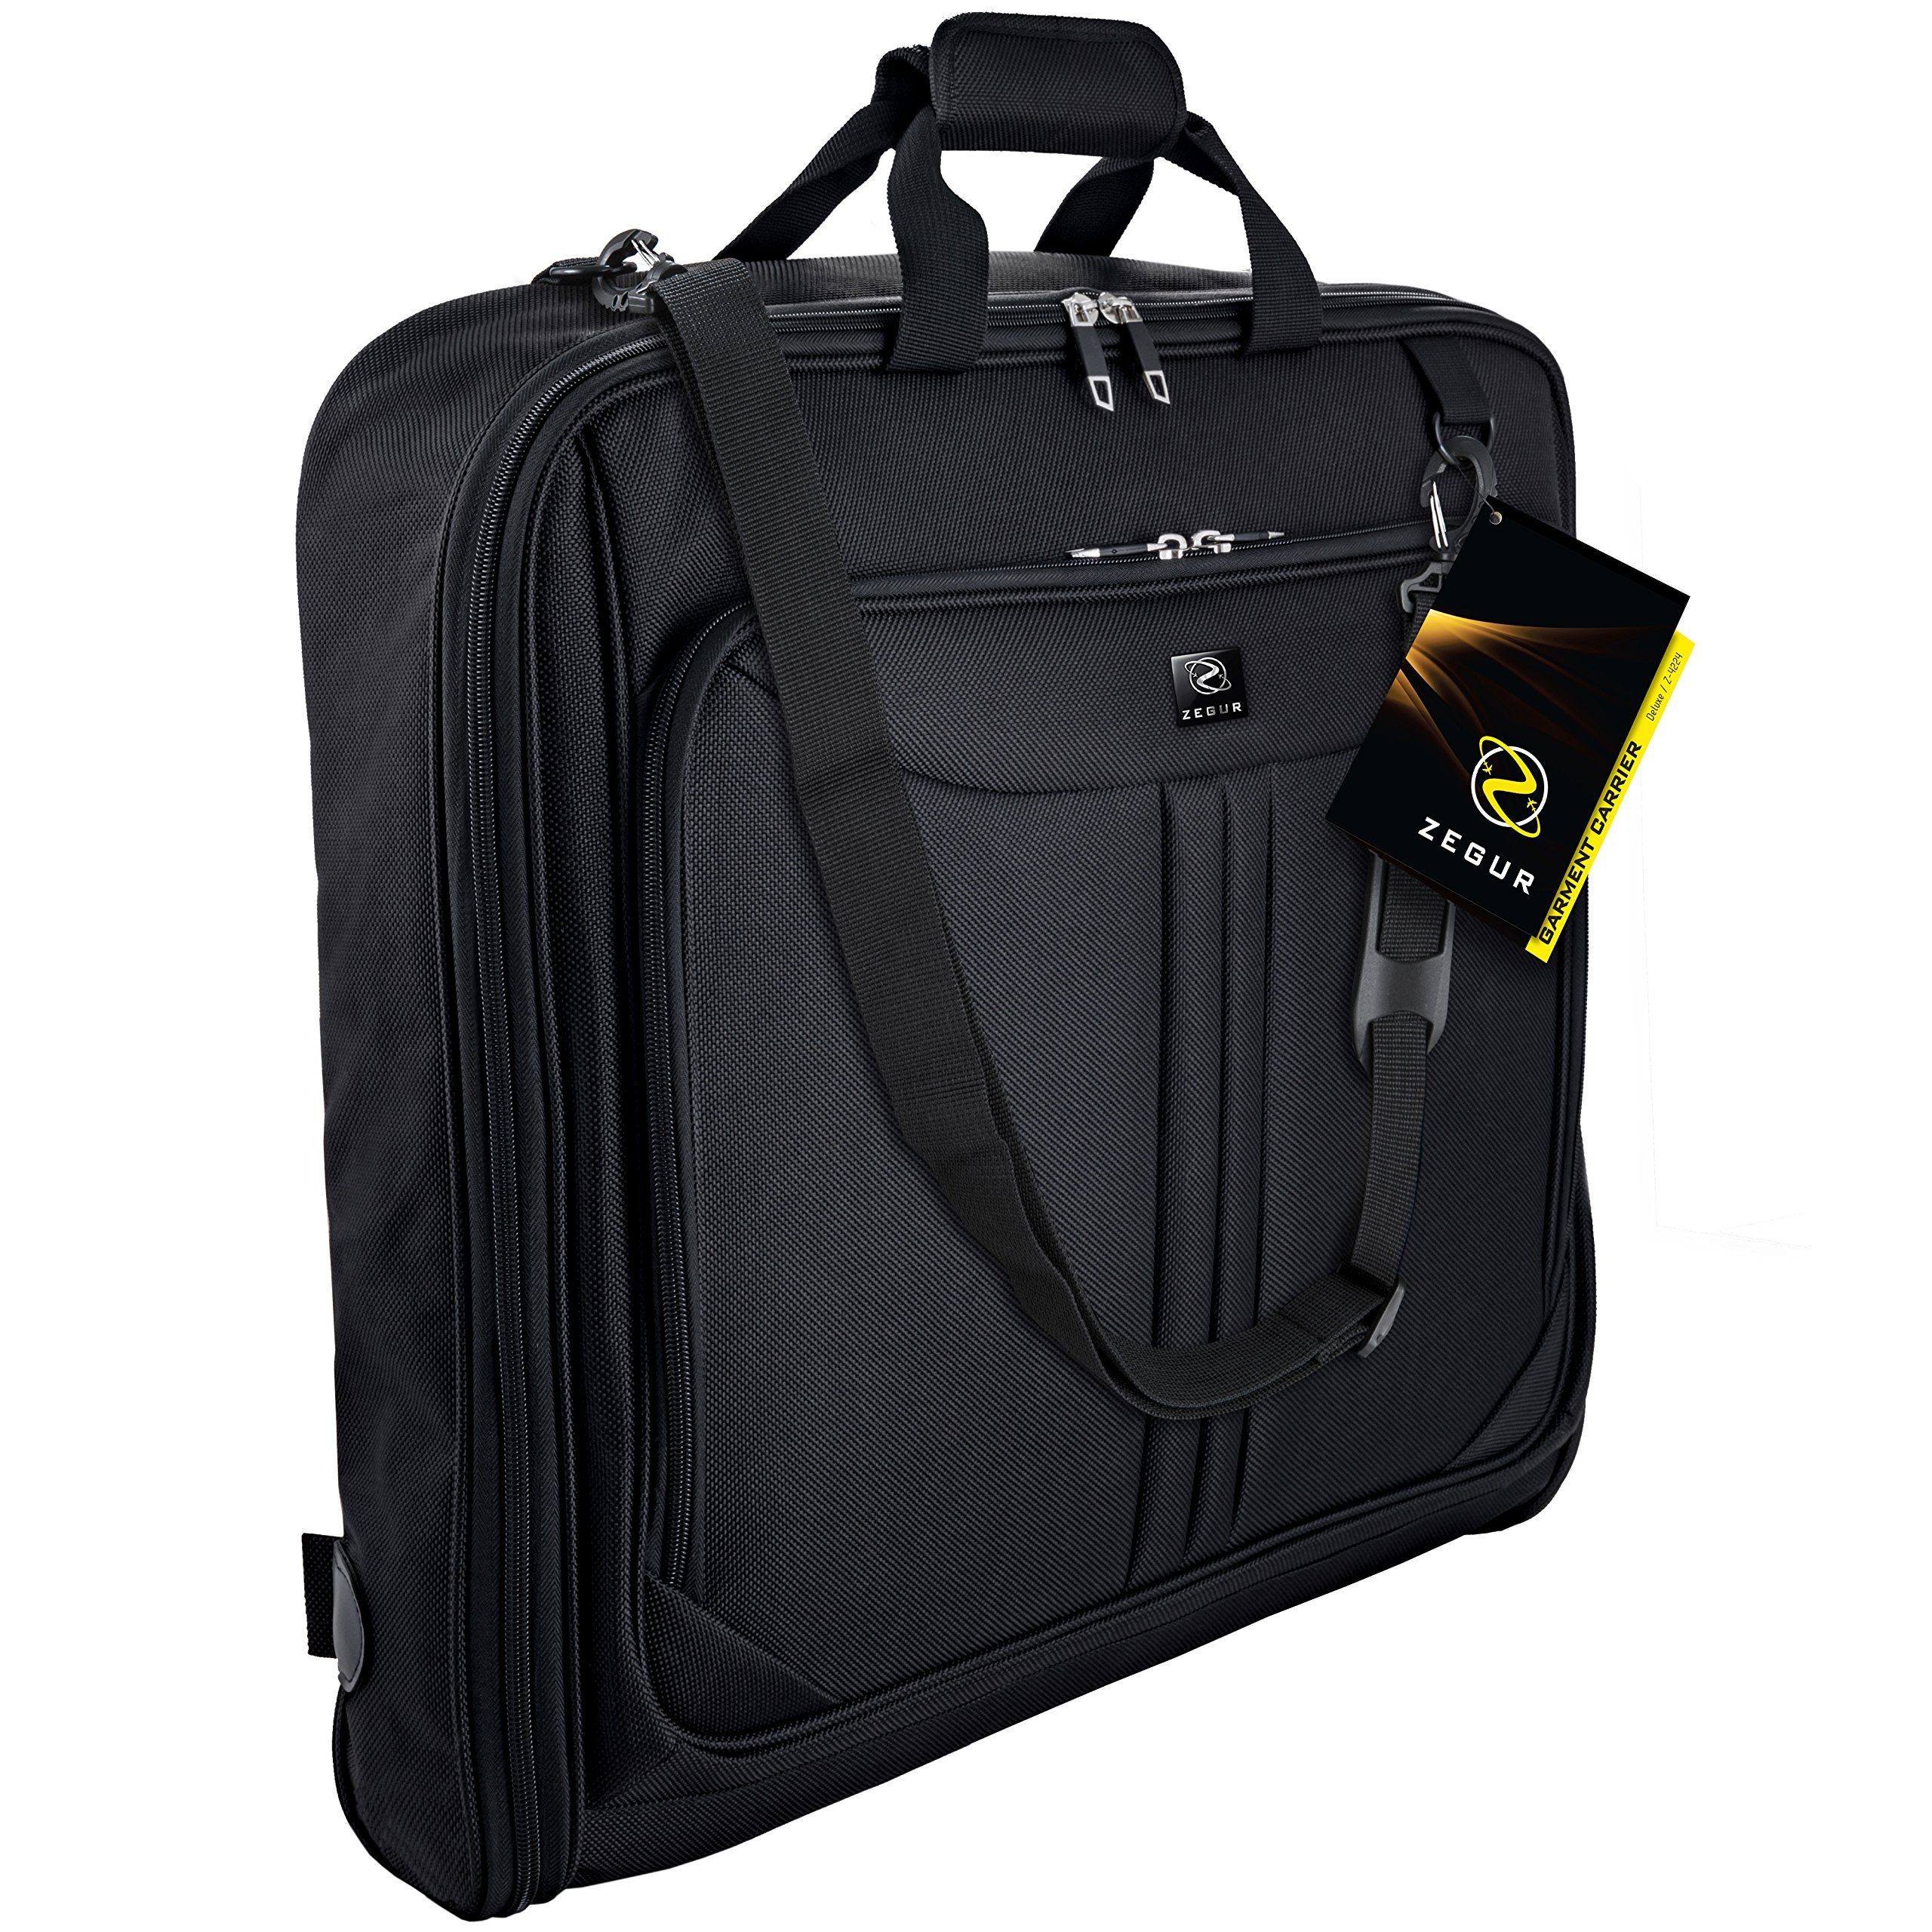 ec9a94d454 ZEGUR Suit Carry On Garment Bag for Travel & Business Trips With Shoulder  Strap